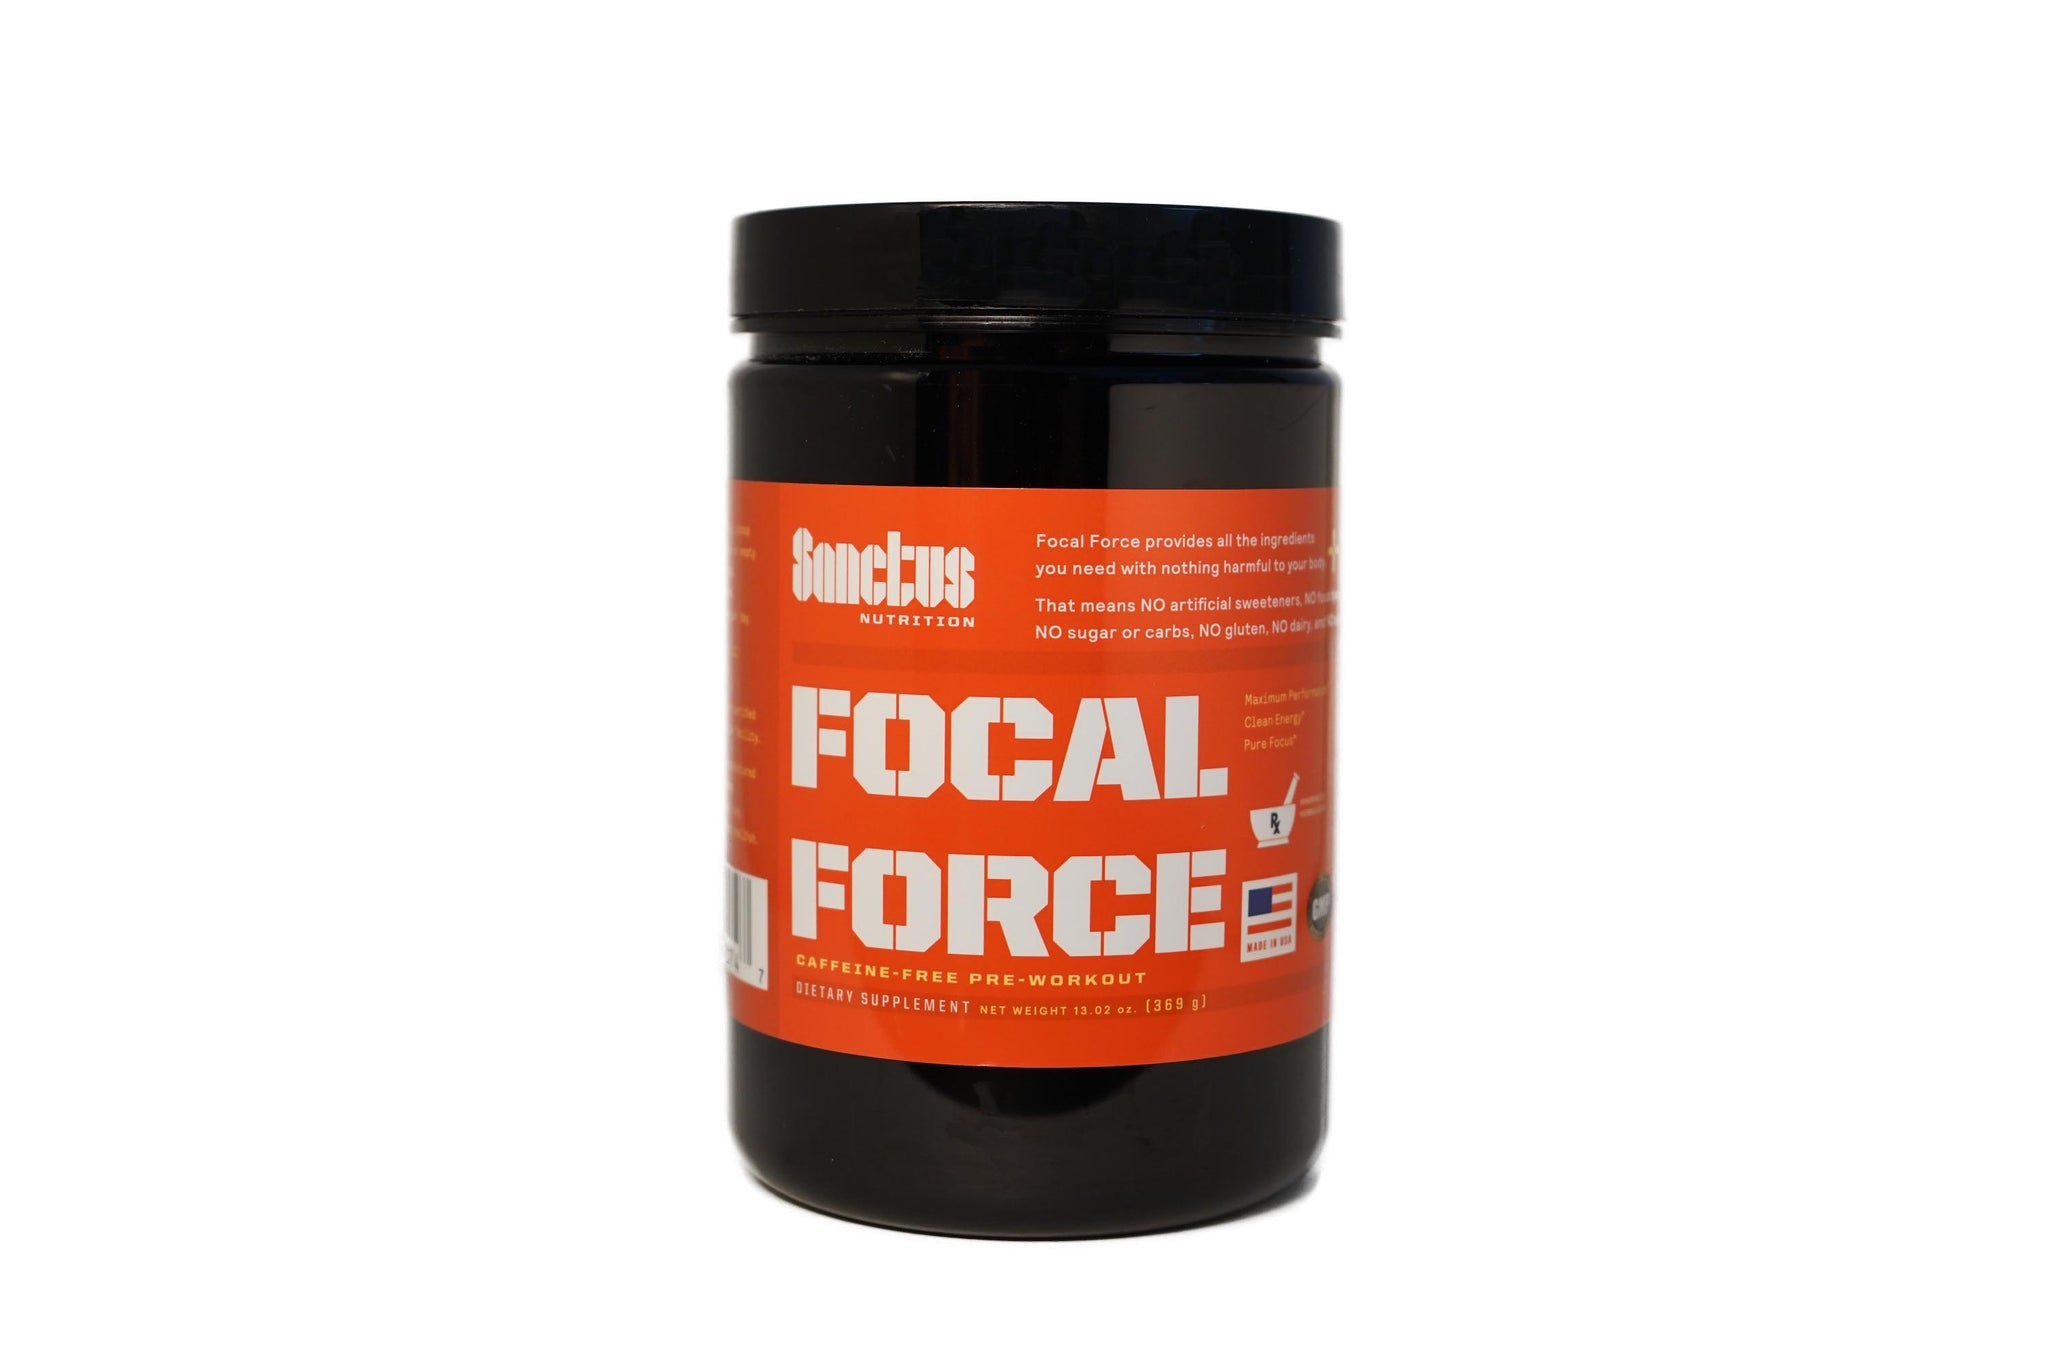 FOCAL FORCE CAFFEINE FREE PRE-WORKOUT